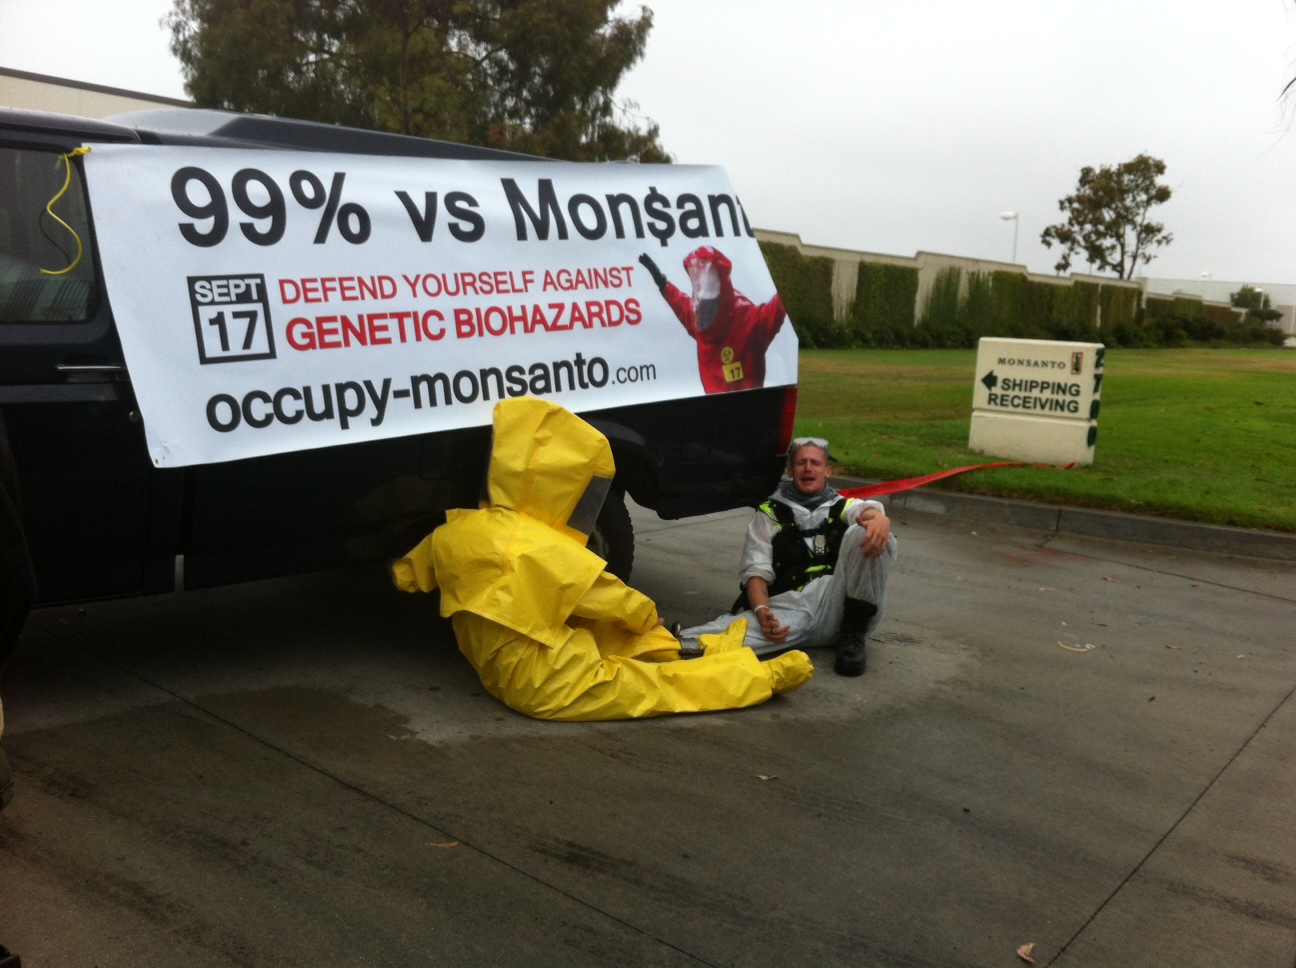 oxnard action photo 24 Photos of GCU Field Agents occupying Monsantos Oxnard facility Seminis Protest Oxnard Occupy Monsanto GMO Seeds GCU Direct Action Decontamination Event CA